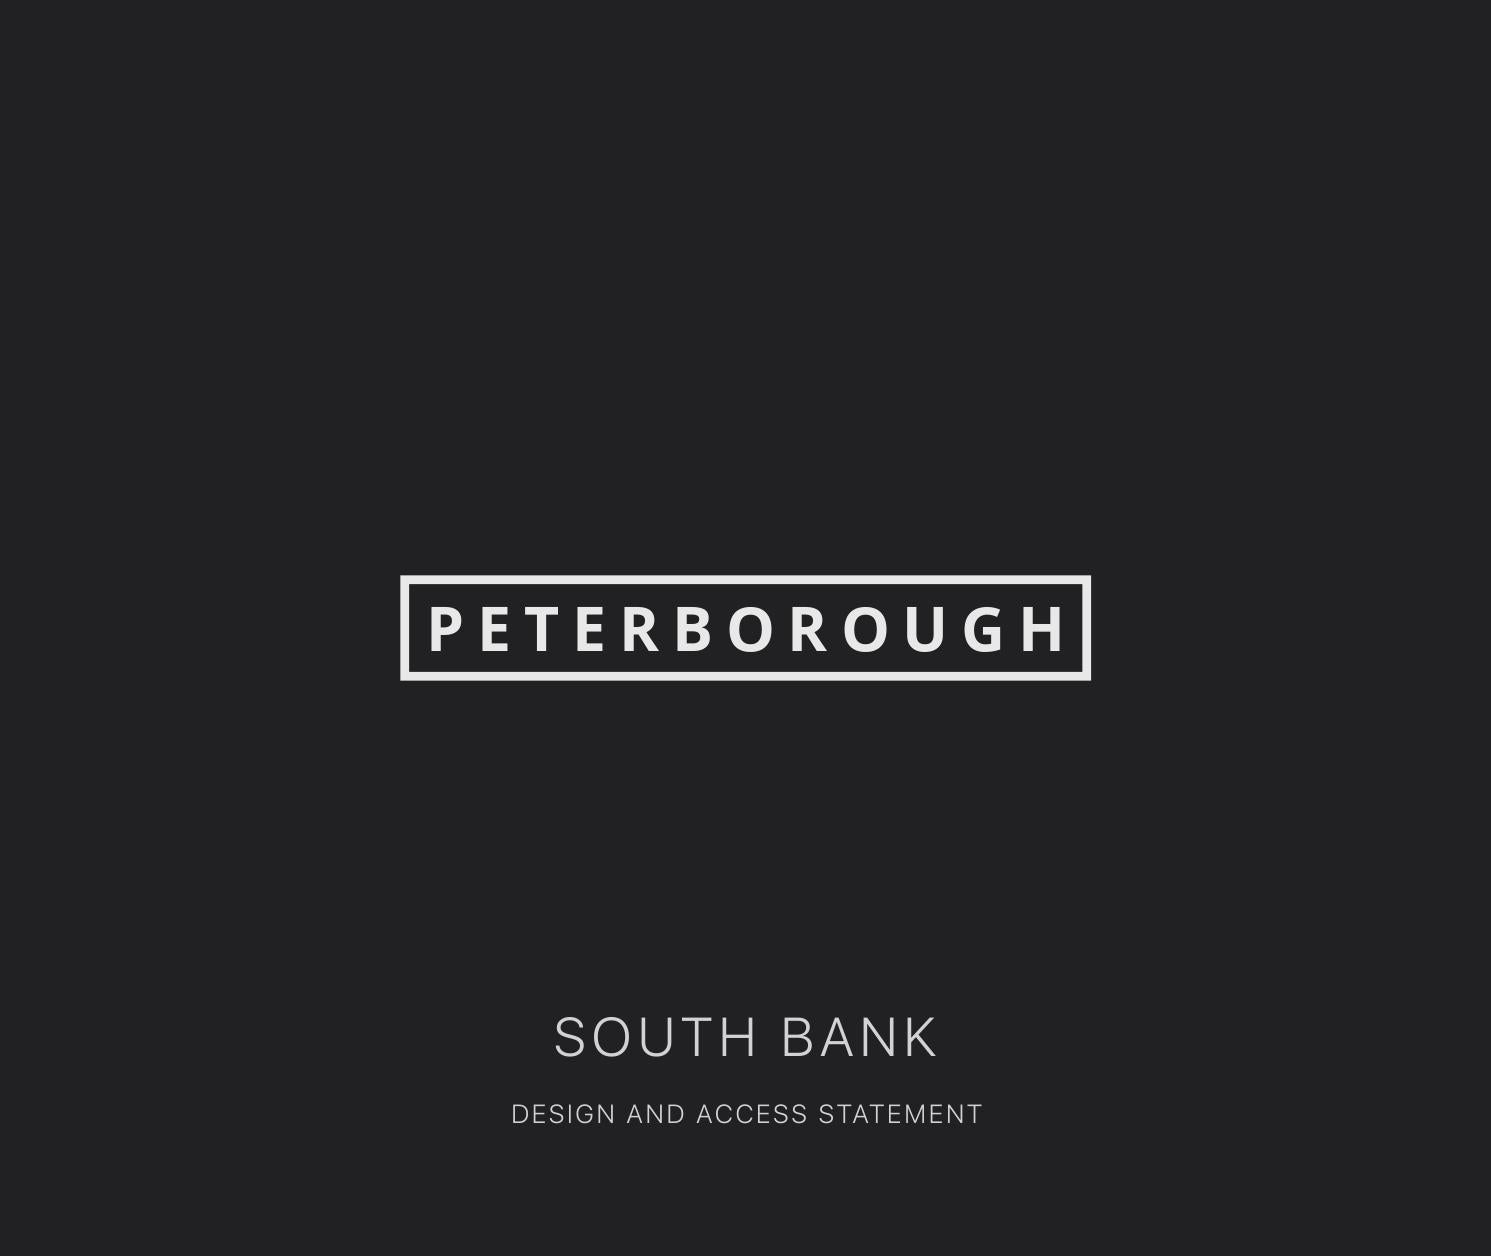 Peterborough Southbank Design and Access Statement by Nisha Gandhi